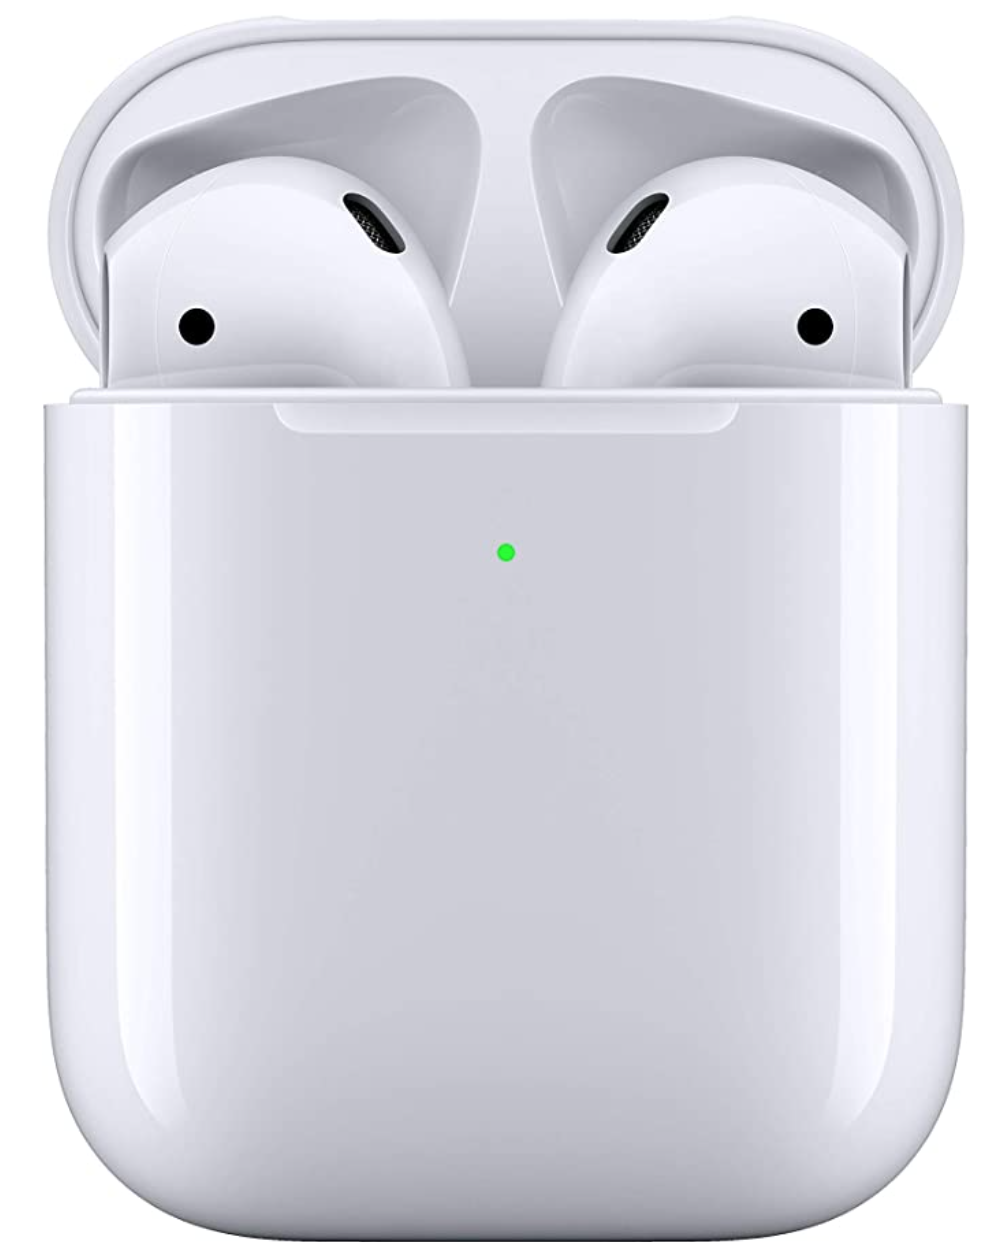 Apple Airpods With Wireless Charging Case Reg 199 Now Only 139 98 Wireless Apple Tv Iphone Accessories